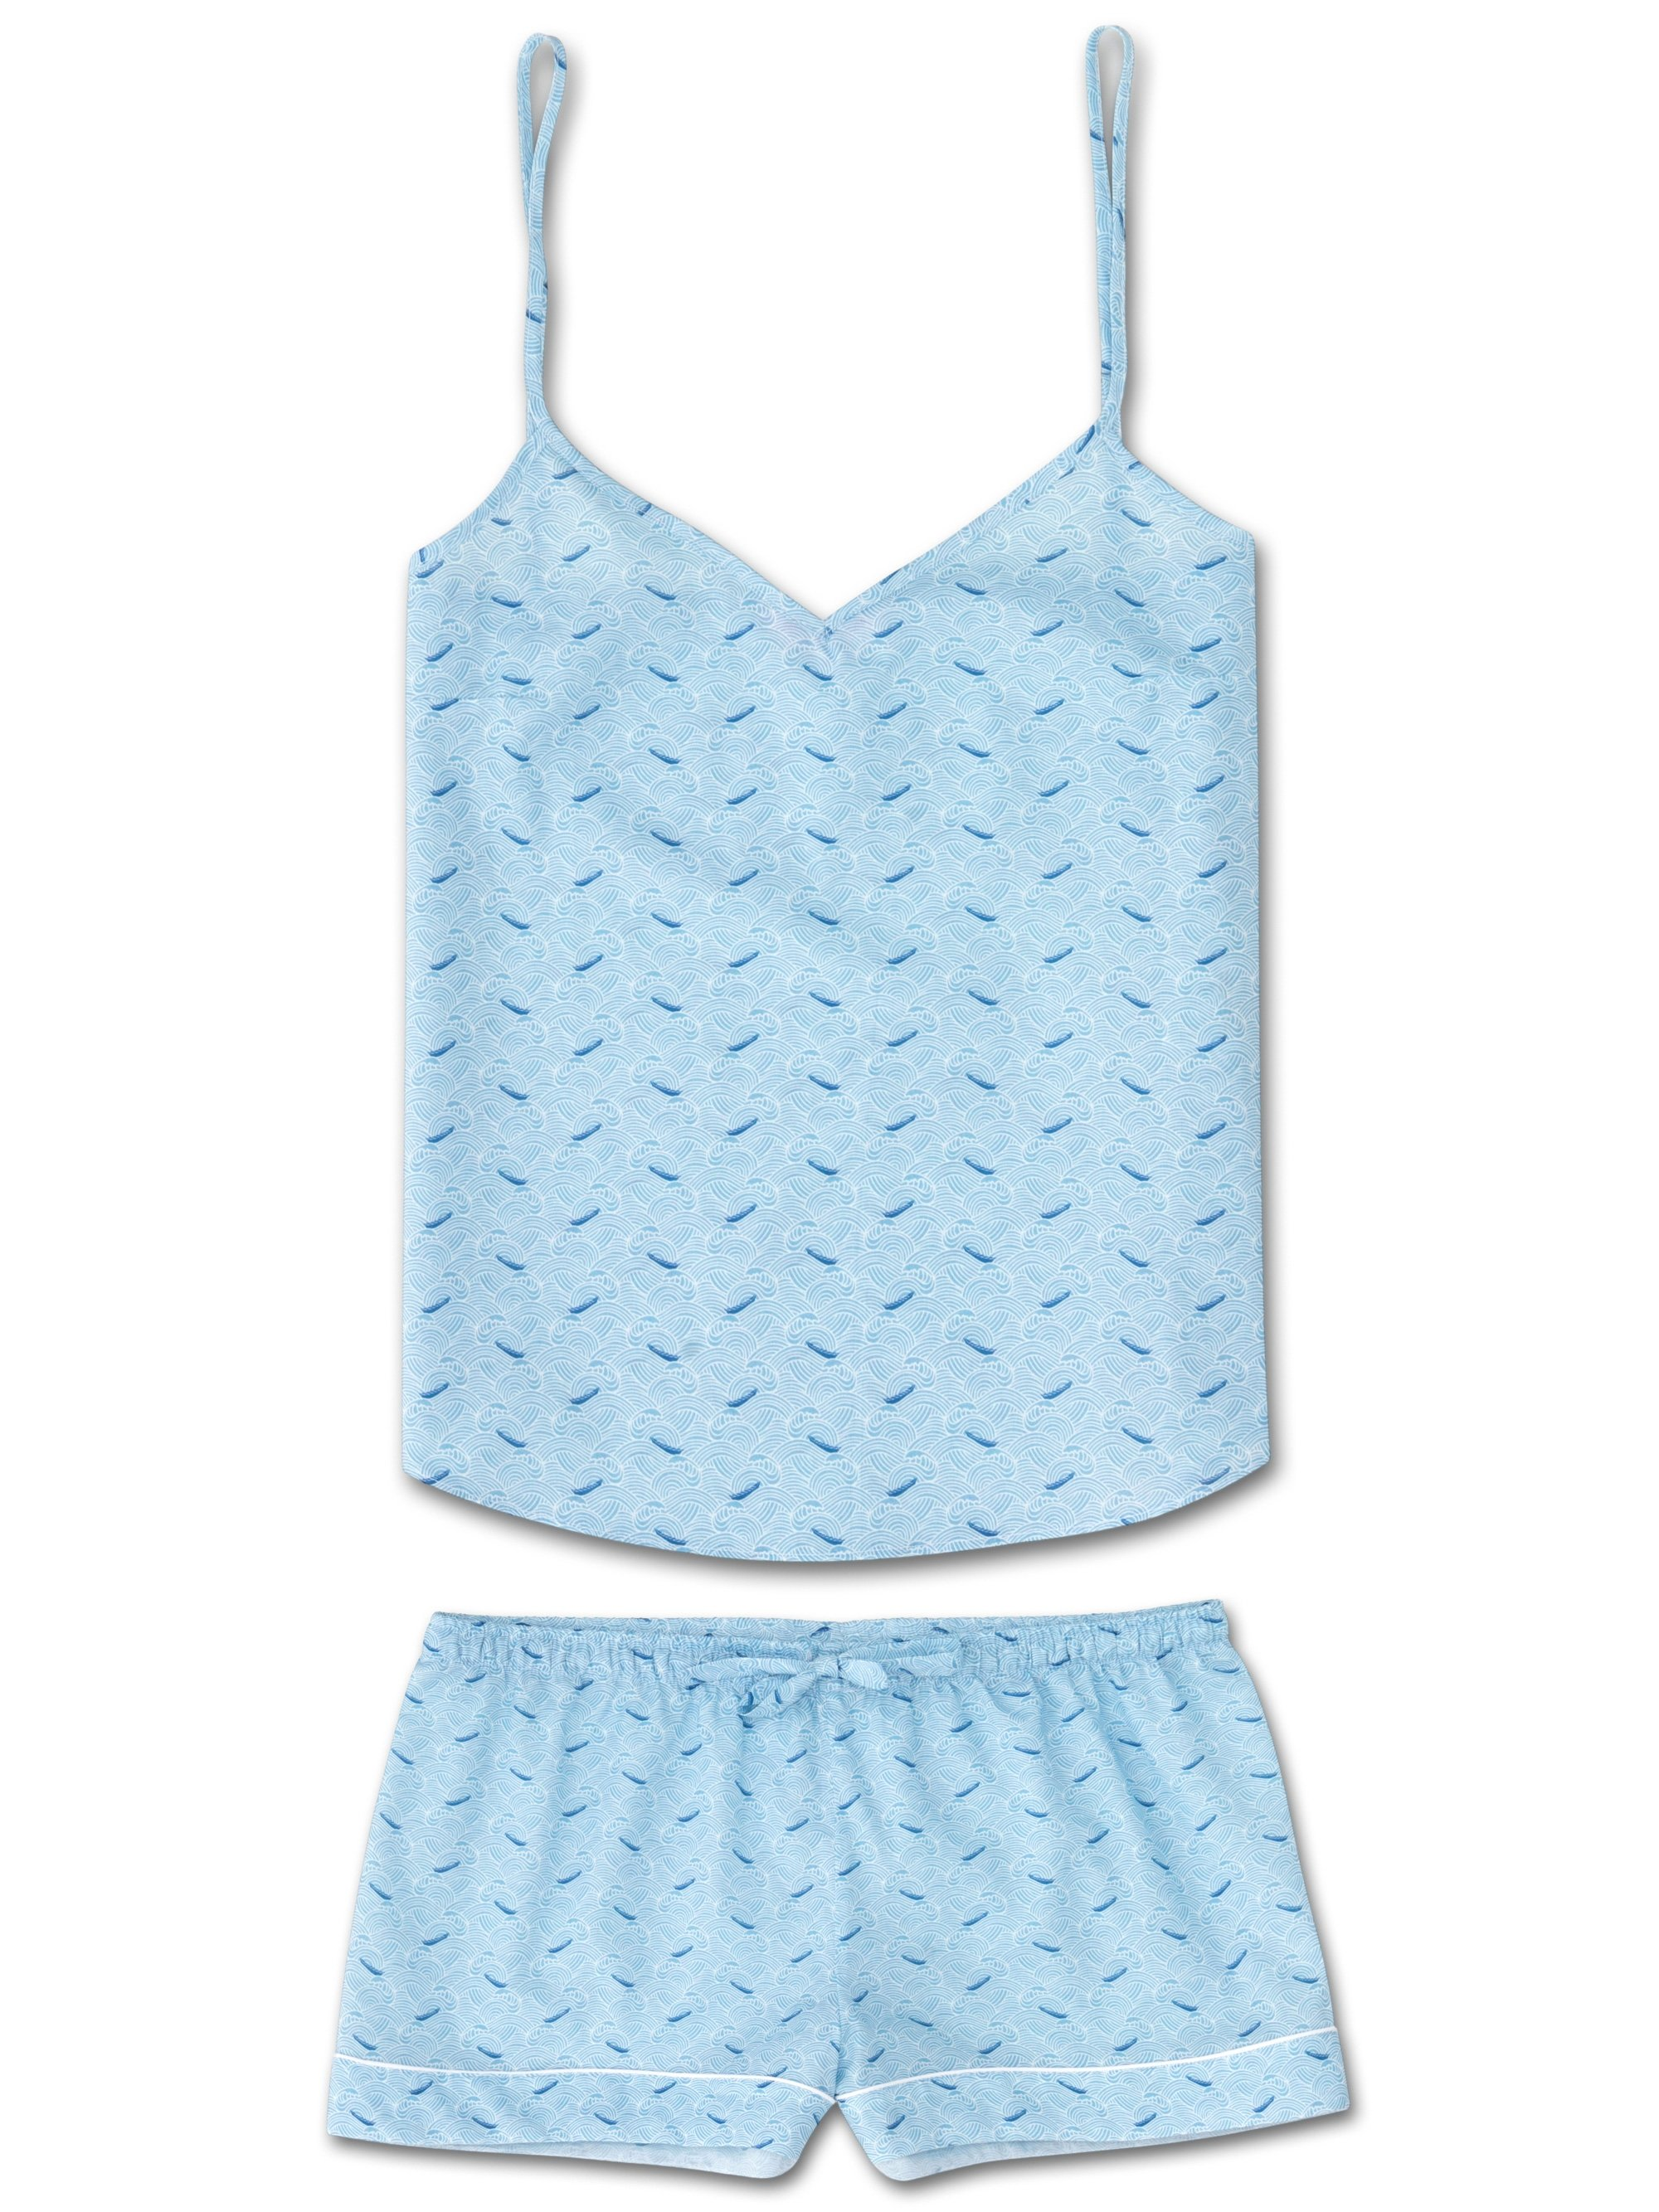 Women's Cami Short Pyjama Set Ledbury 12 Cotton Batiste Blue